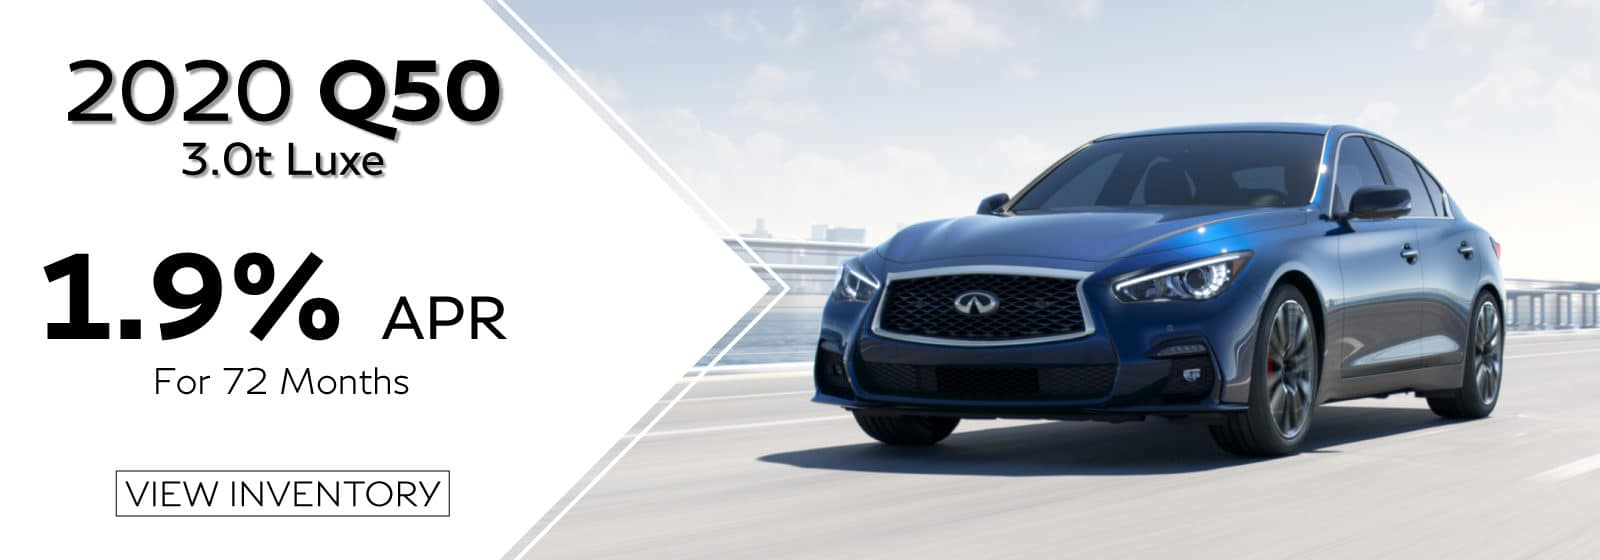 2020 Q50 3.0T LUXE. 1.9% APR for 72 months with View Inventory Button